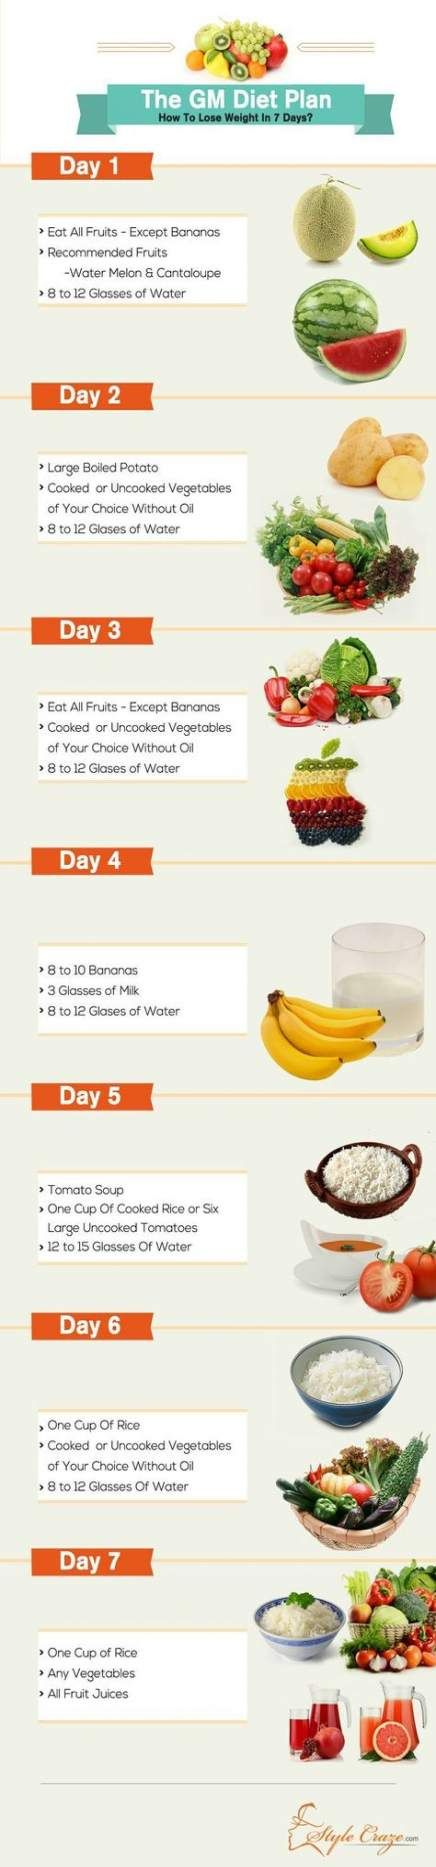 39 Ideas Fitness Motivation Before And After 1 Month Exercise #motivation #fitness